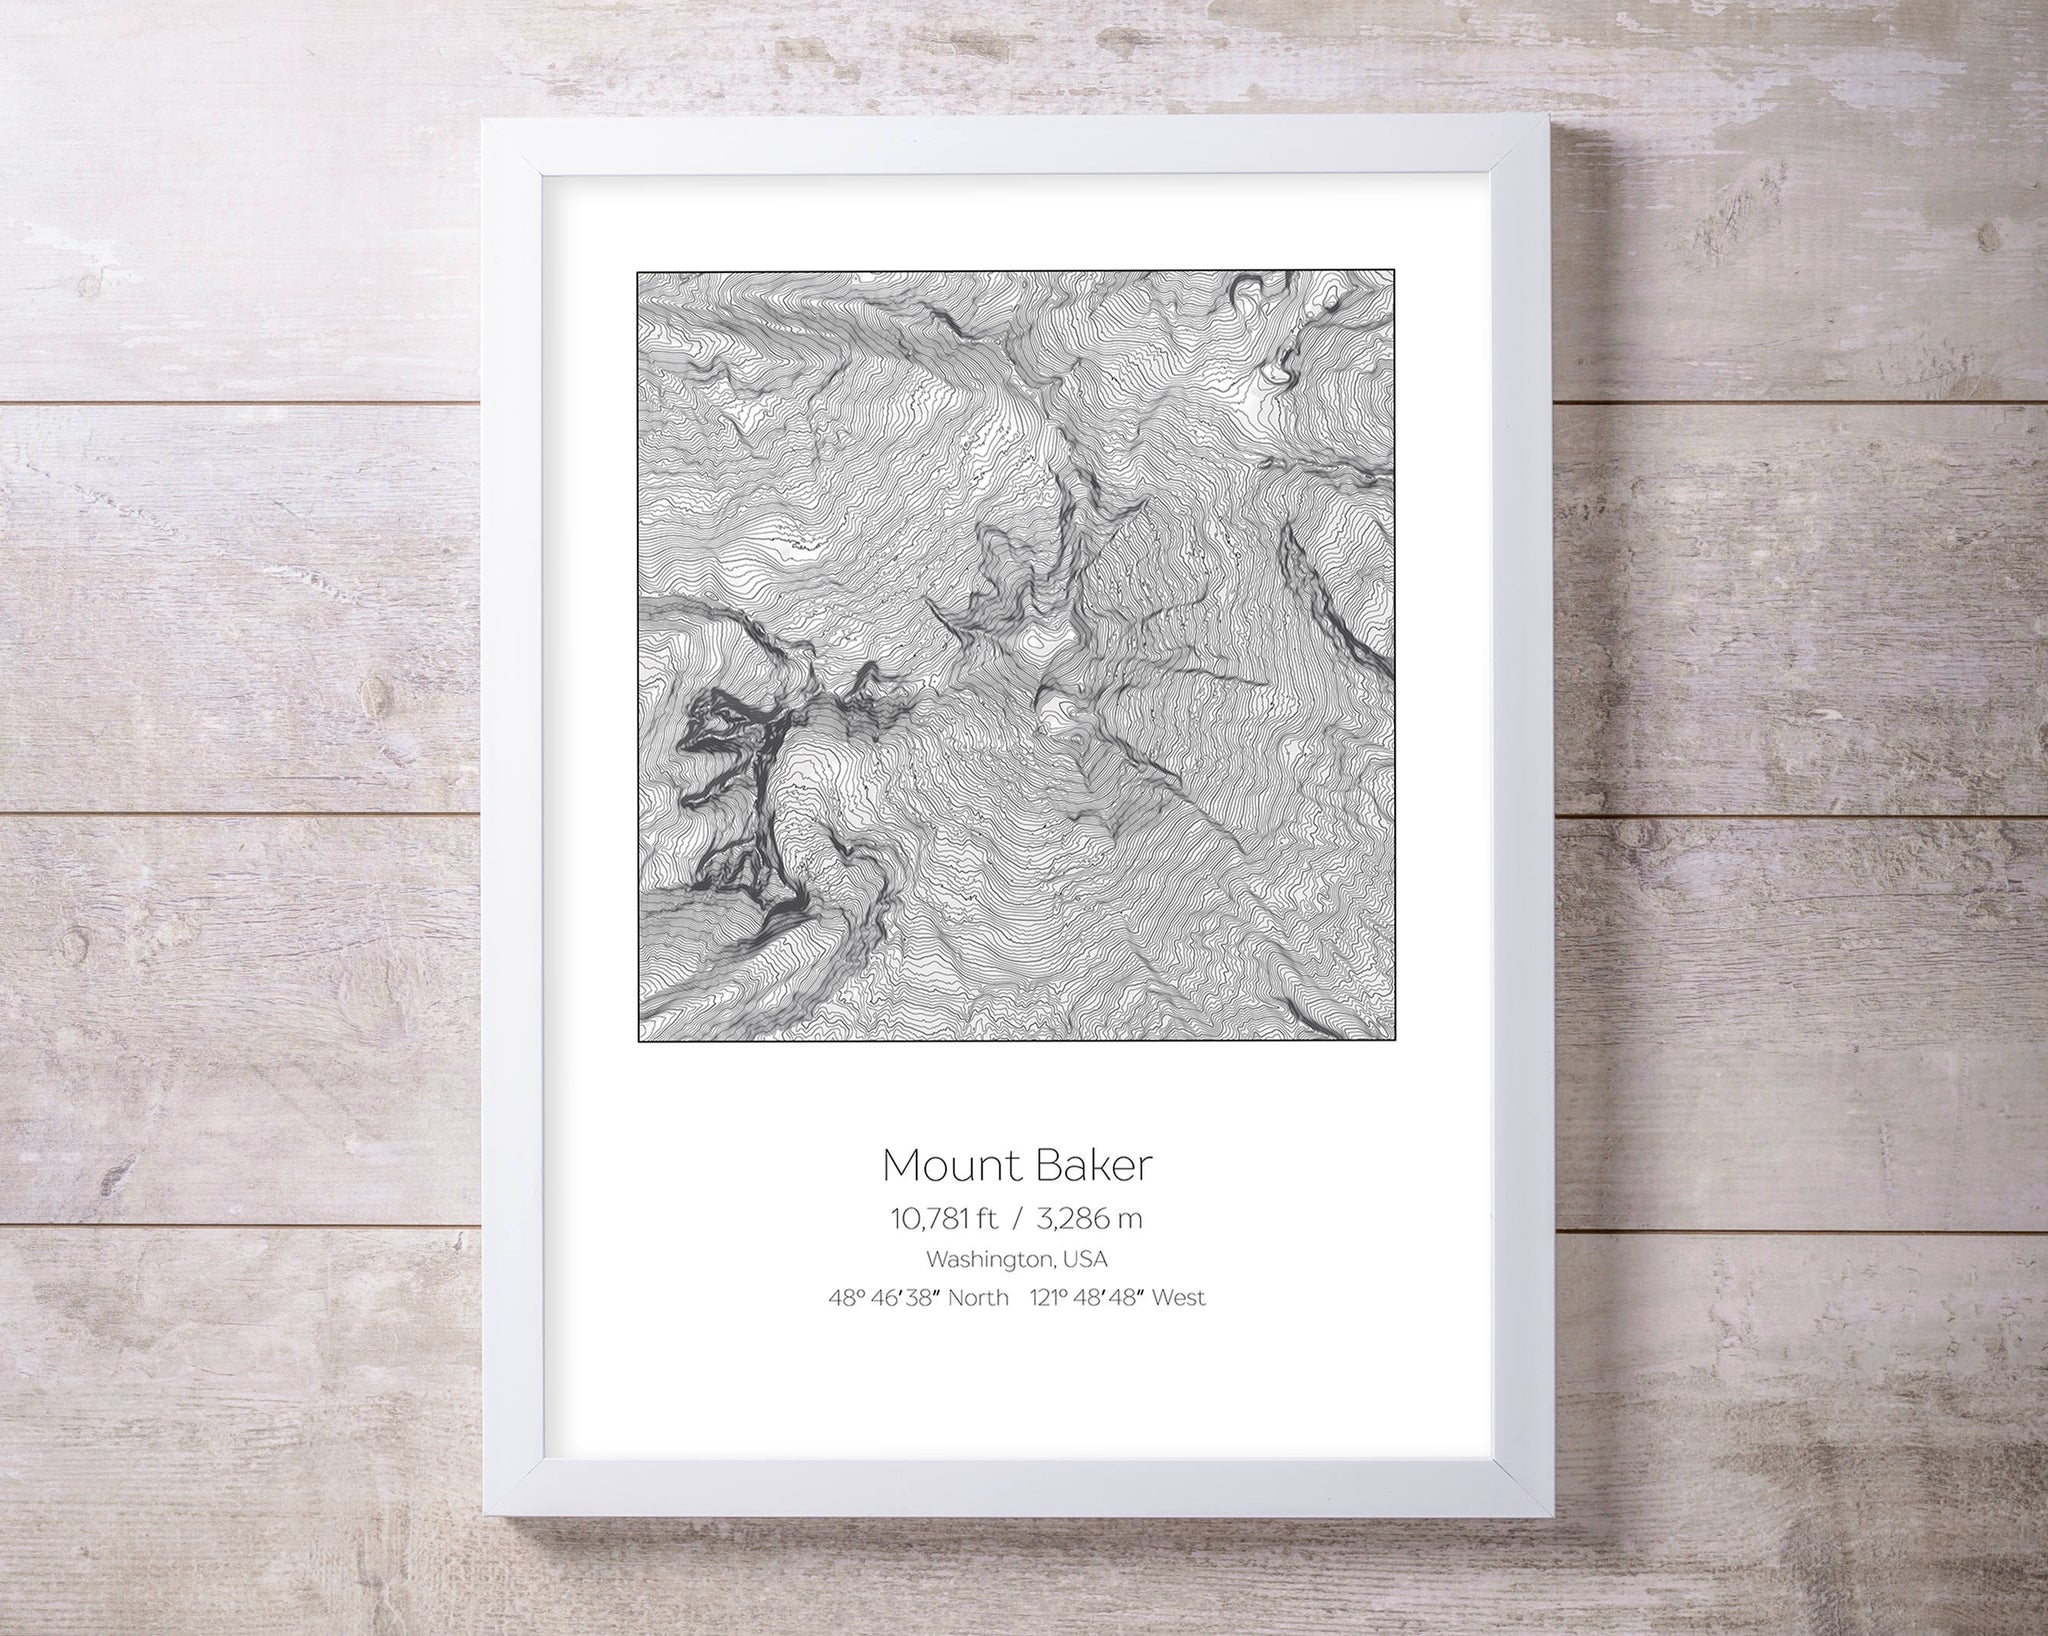 Mount Baker, Washington Topography Elevation Print Wall Art